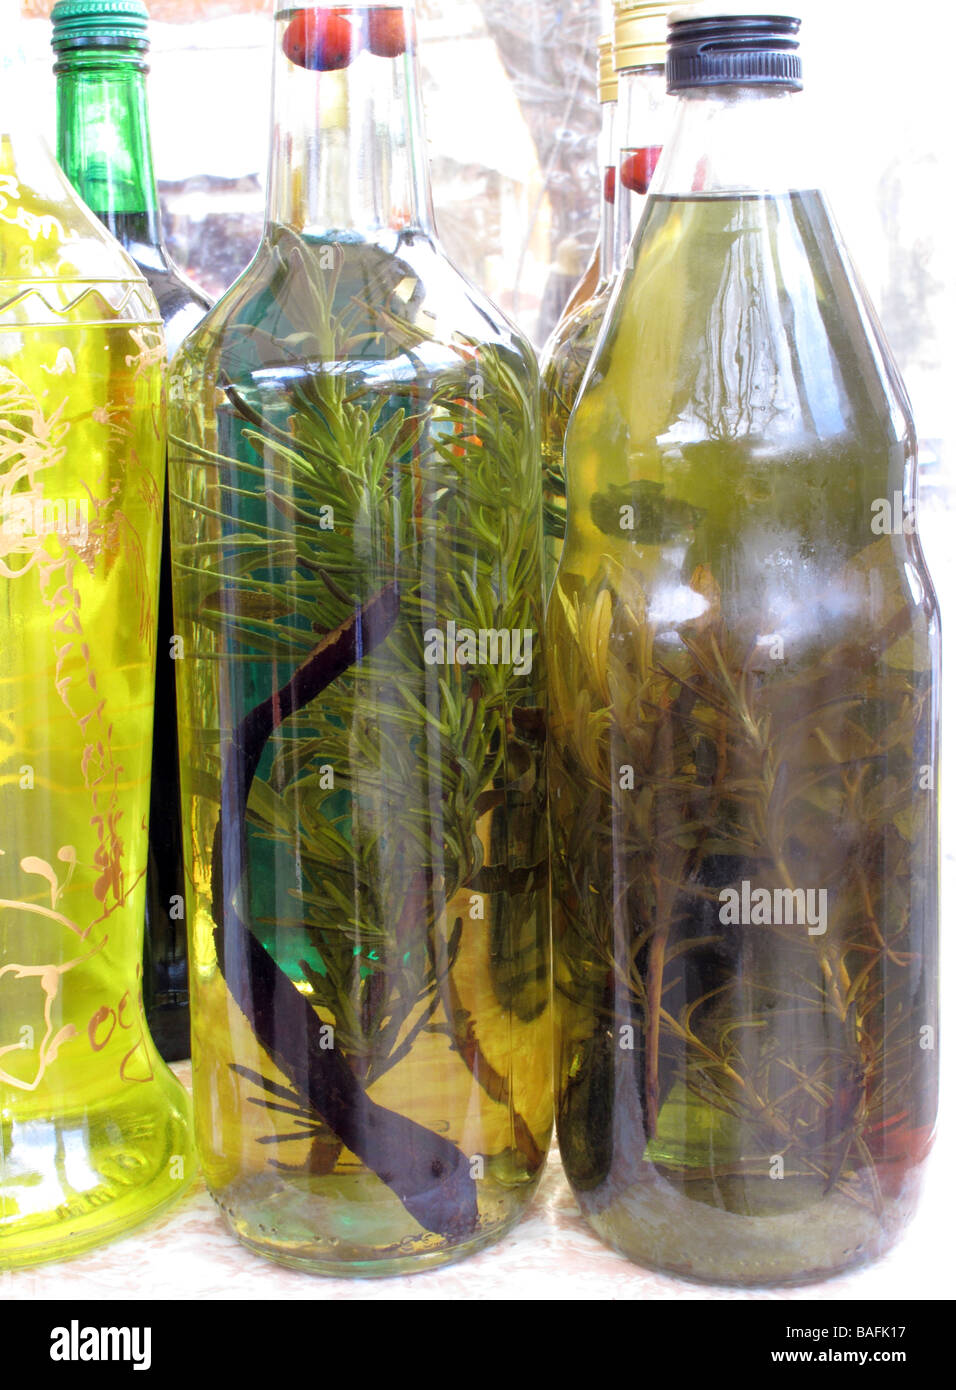 Bottles of olive oil with herbs home made for food preparation and or medicine Dalmatia Croatia - Stock Image